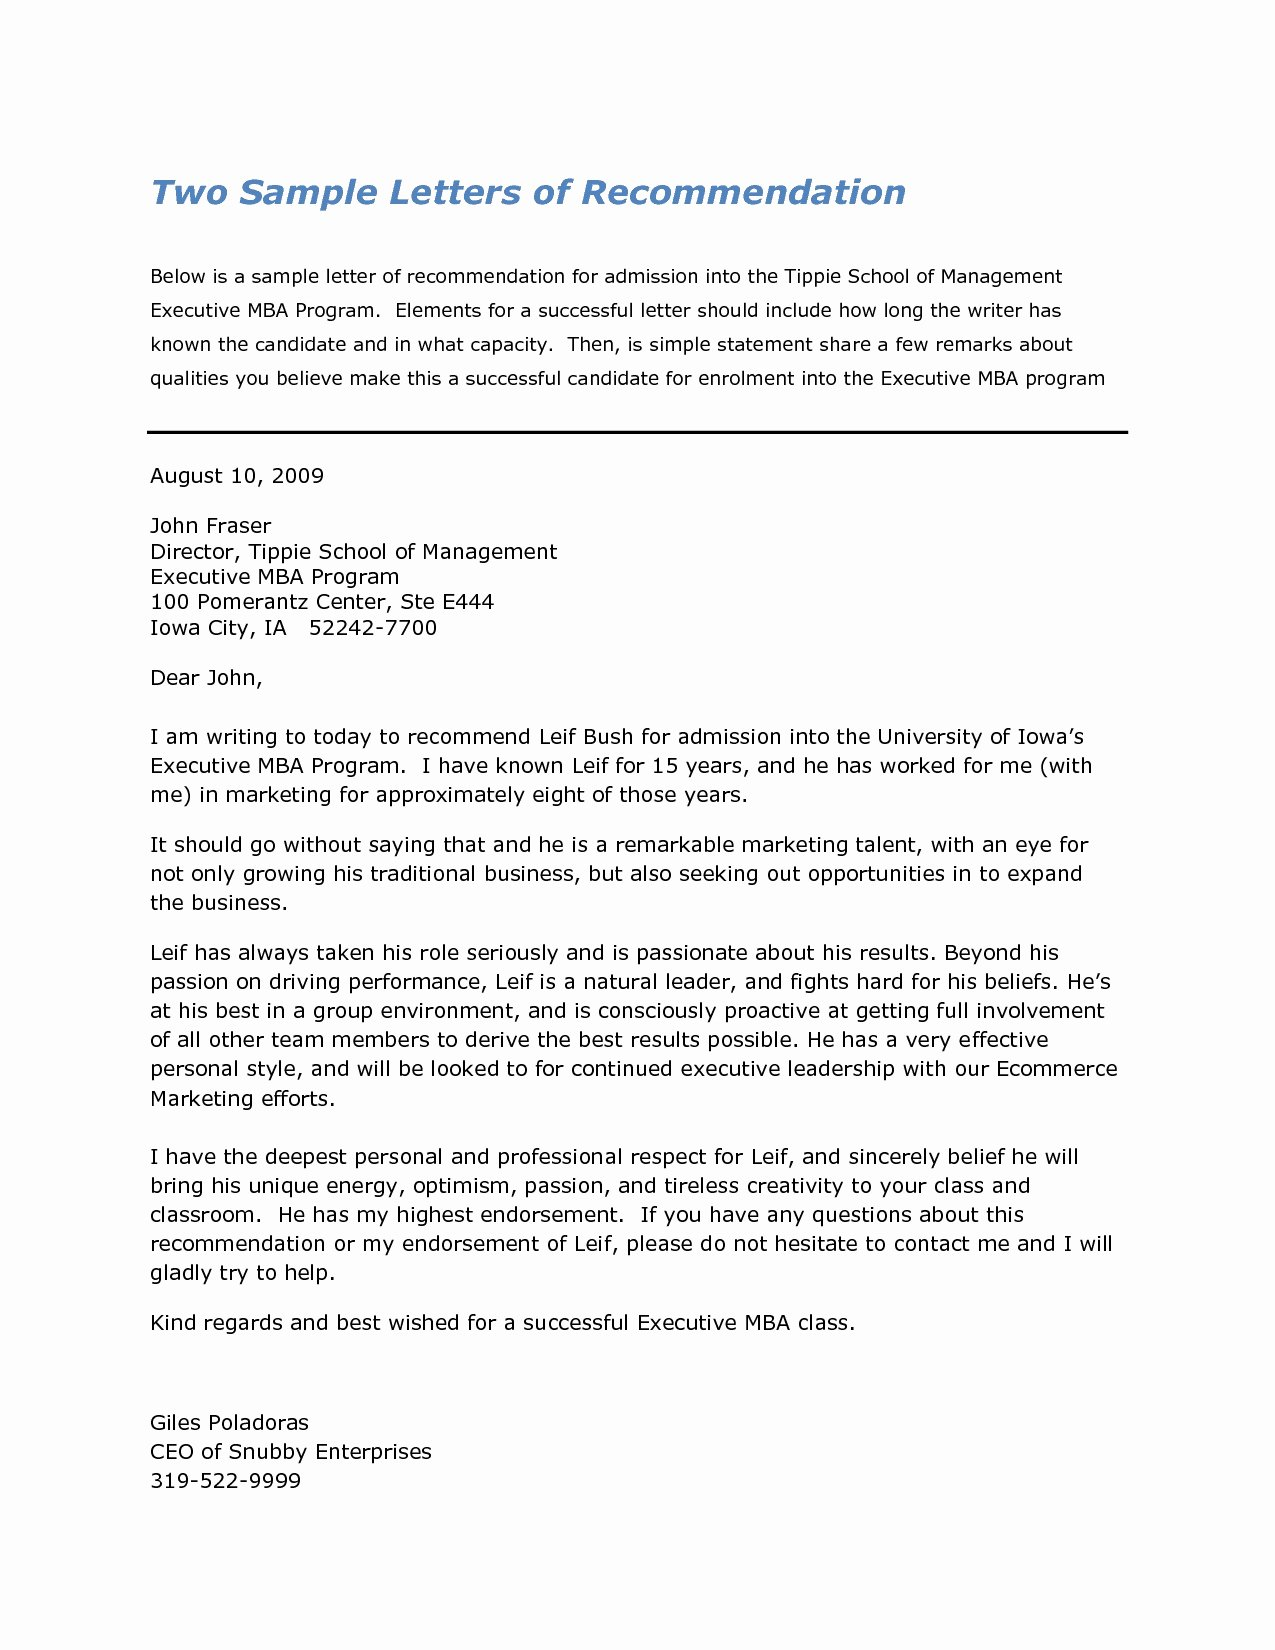 Business School Recommendation Letter Best Of Sample Re Mendation Letters for Business School